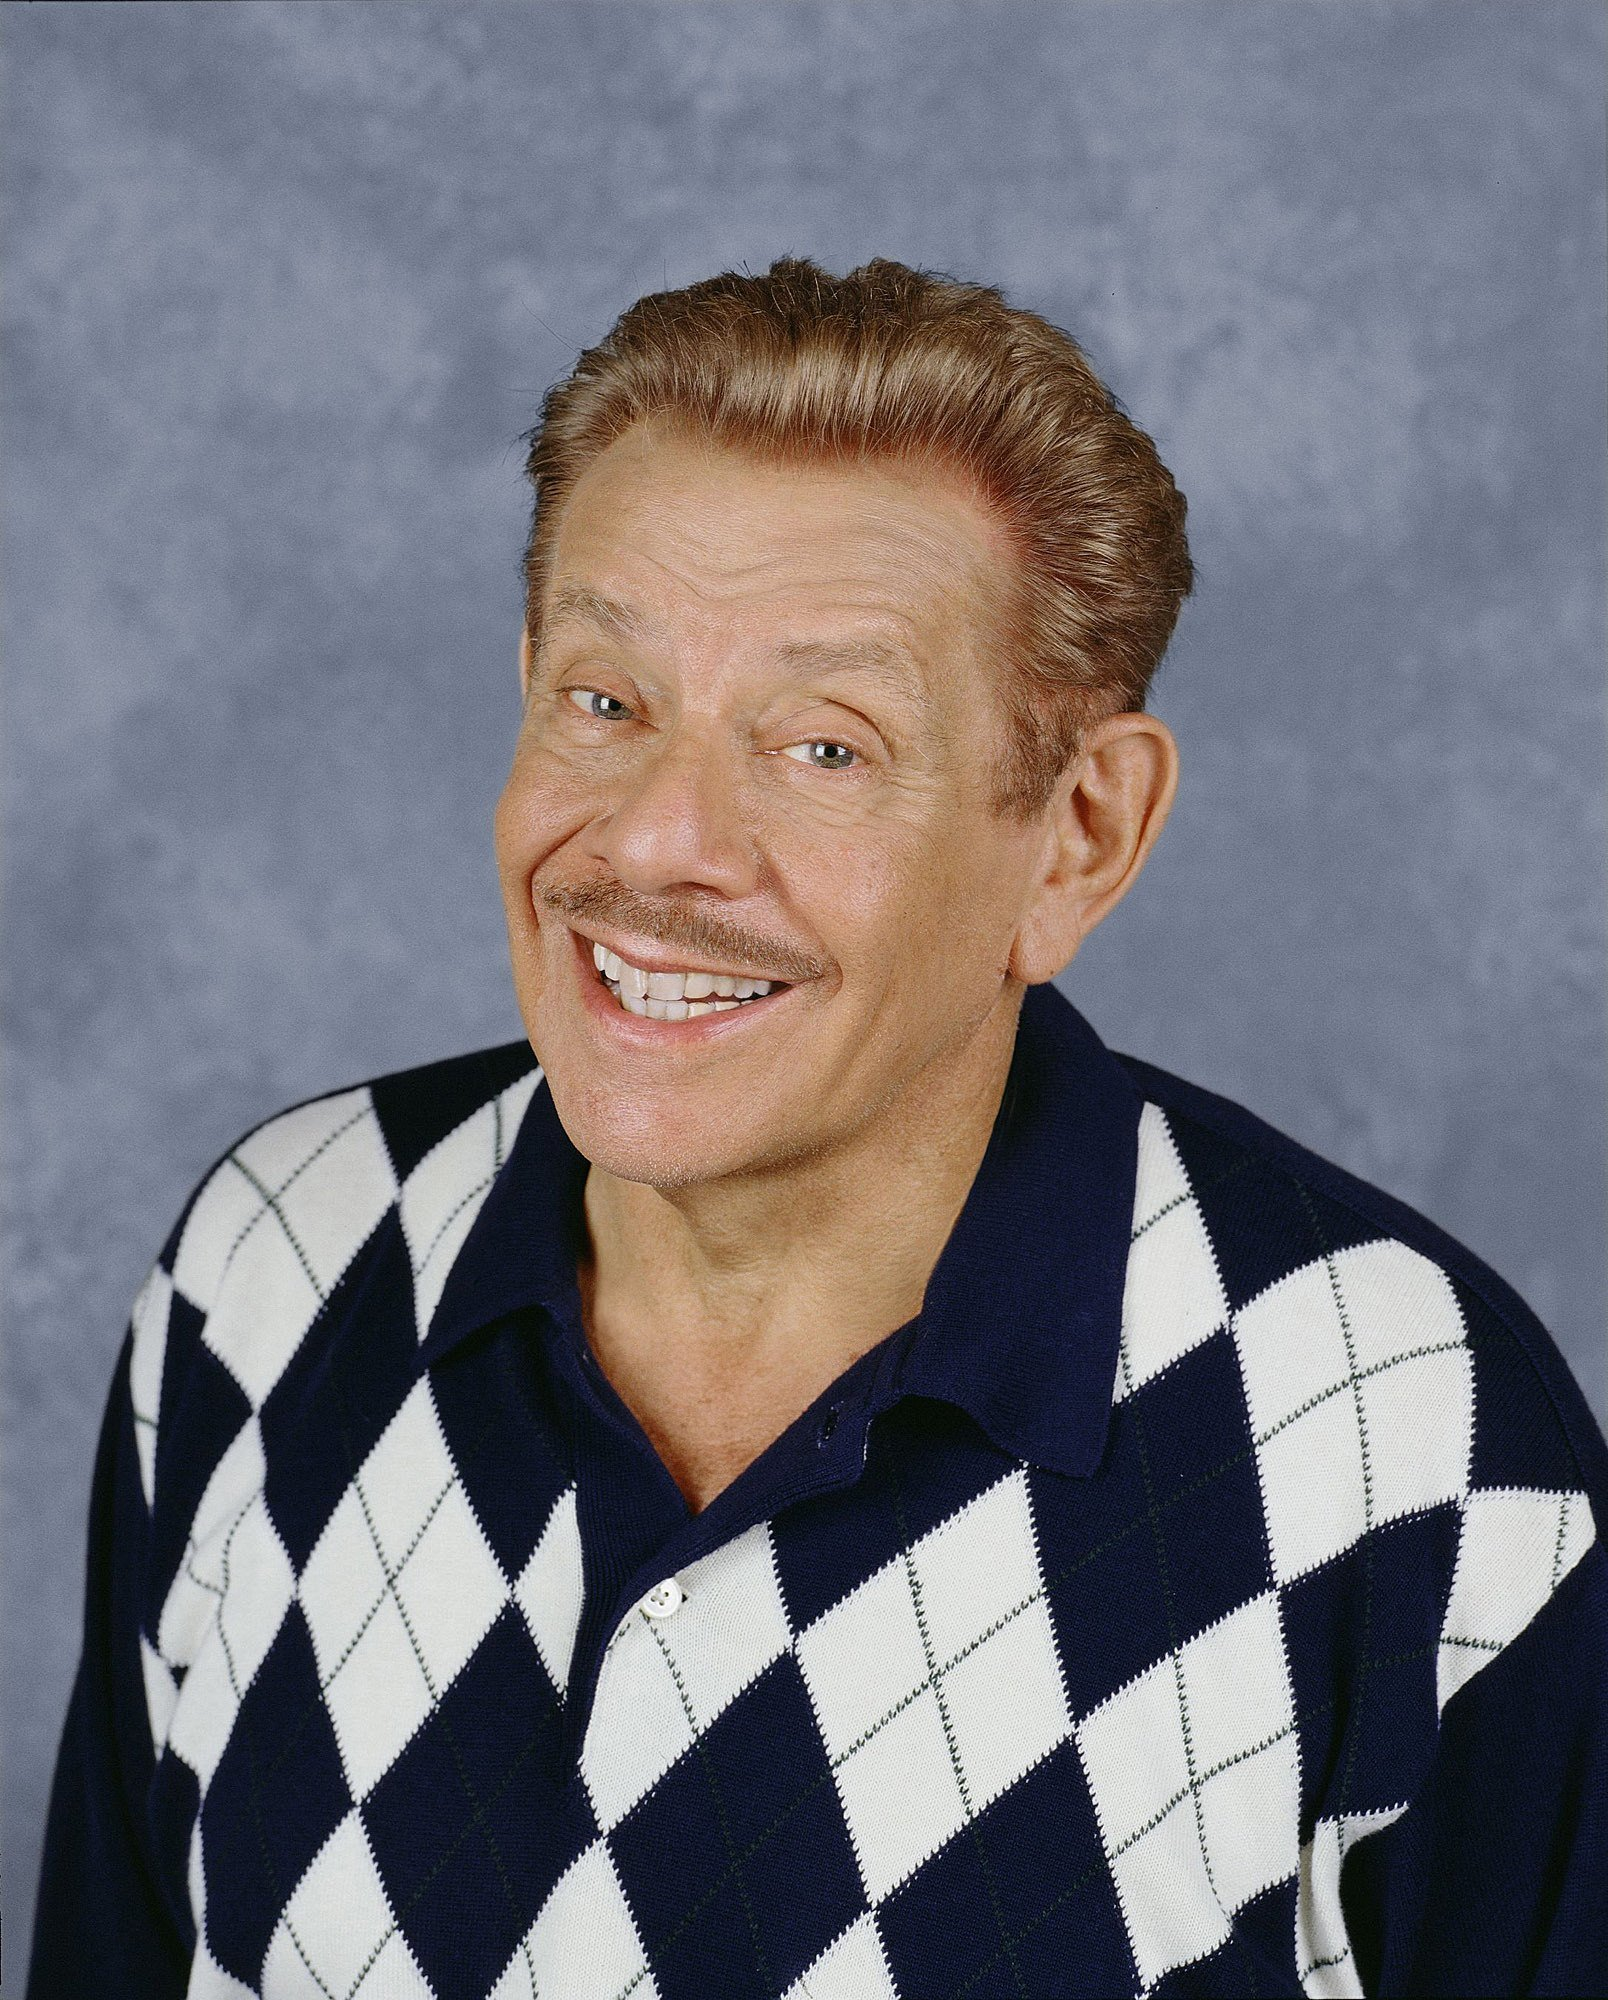 Image Credits: Getty Images | Jerry Stiller will forever be remembered as Frank Costanza